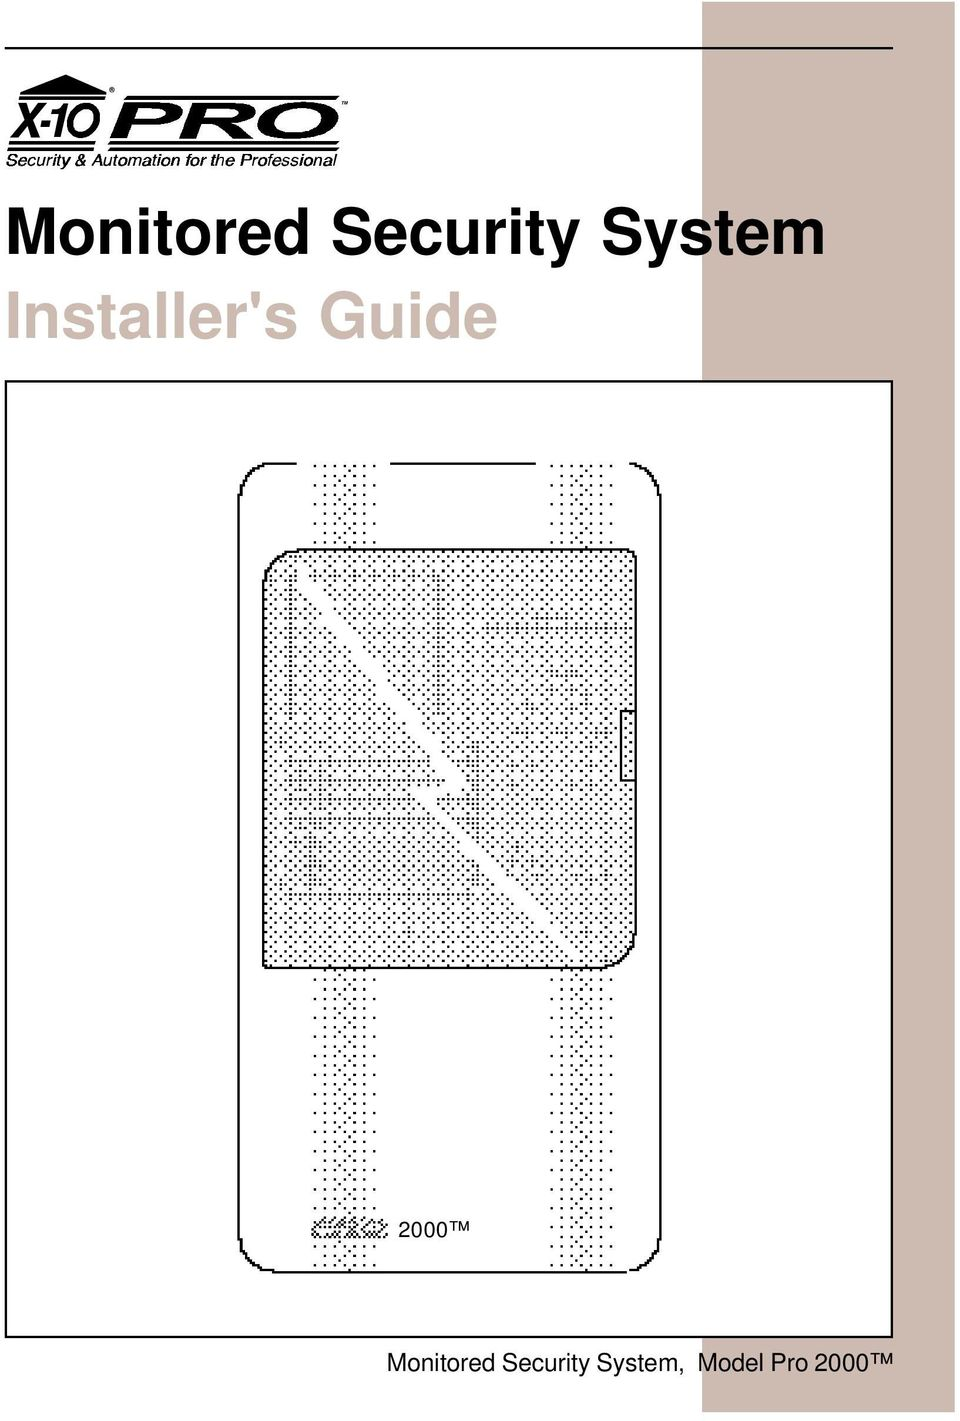 Monitored Security System Installers Guide Pdf X10 Wall Switch Wiring Diagram 2000